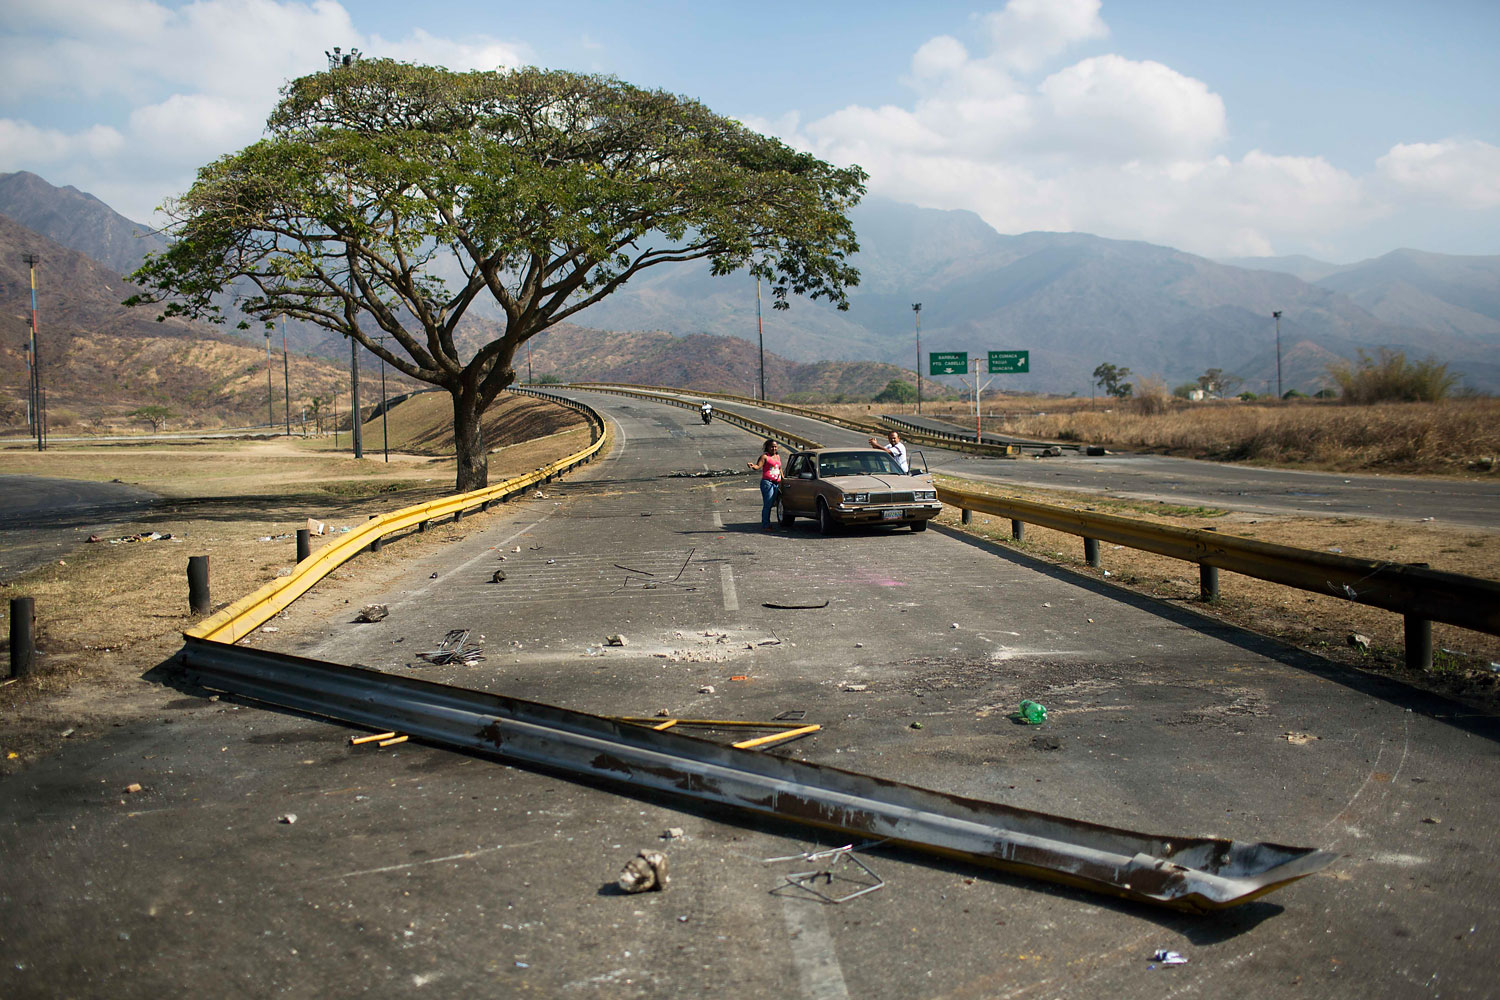 A couple stand next to their car trapped between barricades set up by anti-government protesters, in Valencia, Venezuela, Feb. 27, 2014.